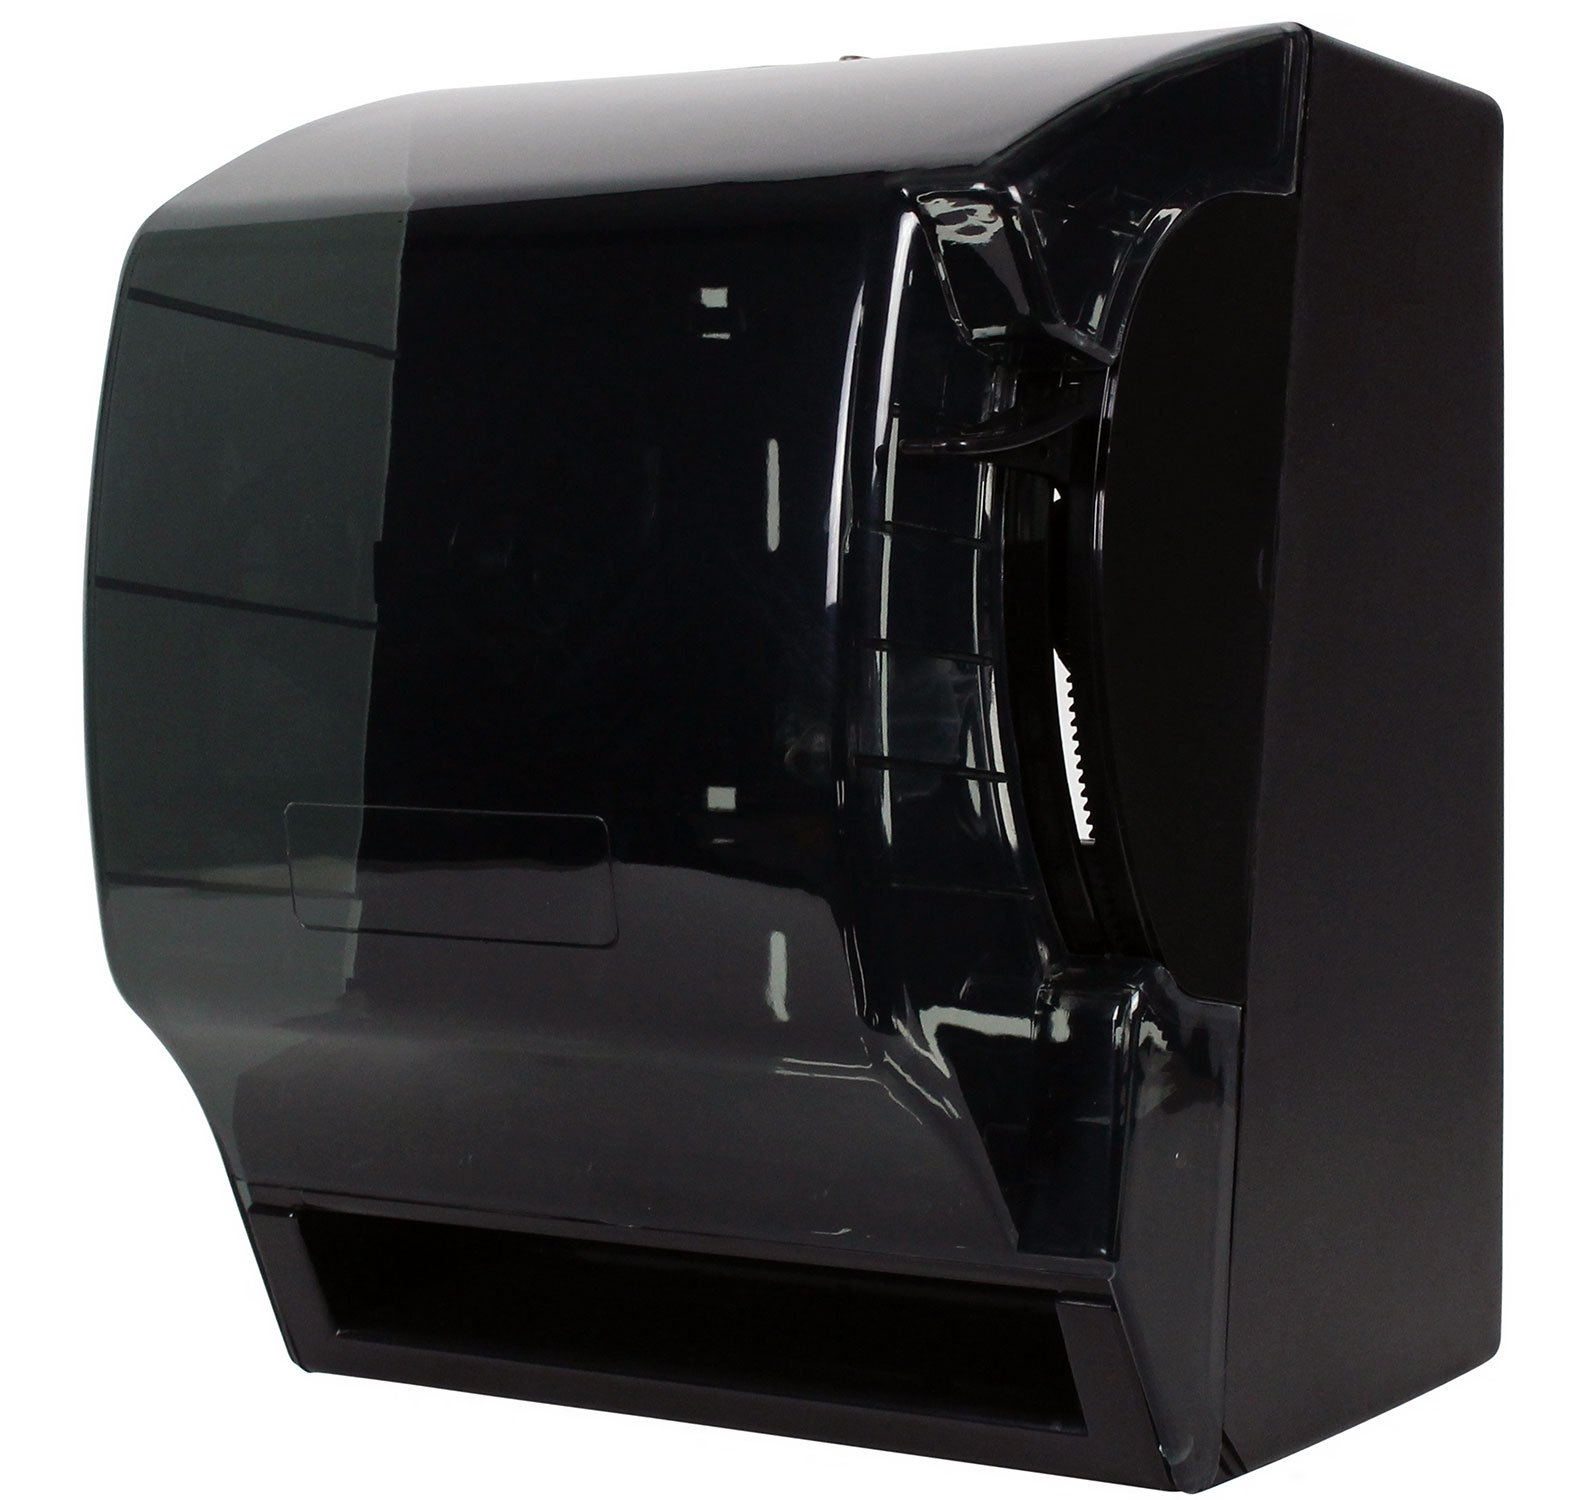 Janico 2008 Commercial Paper Towel Dispenser Wall Mount - Push Down Lever Roll, Translucent Black